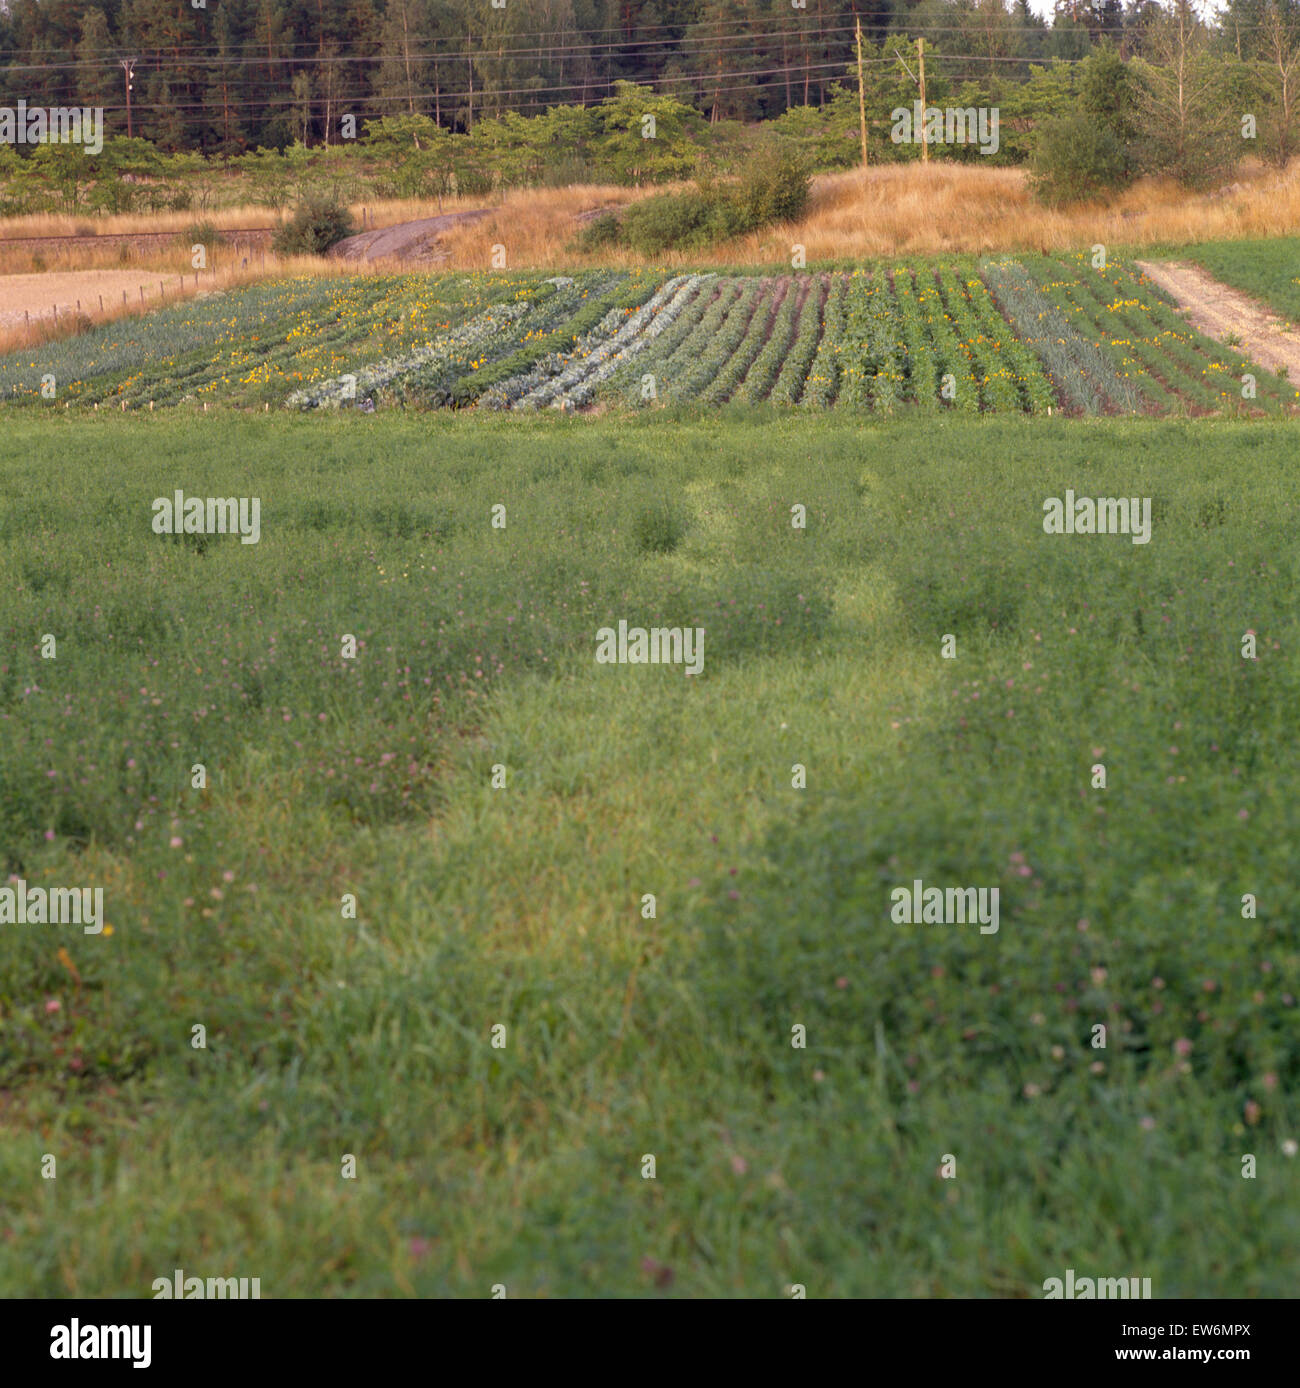 Neat rows of vegetables in country garden viewed across a green field - Stock Image